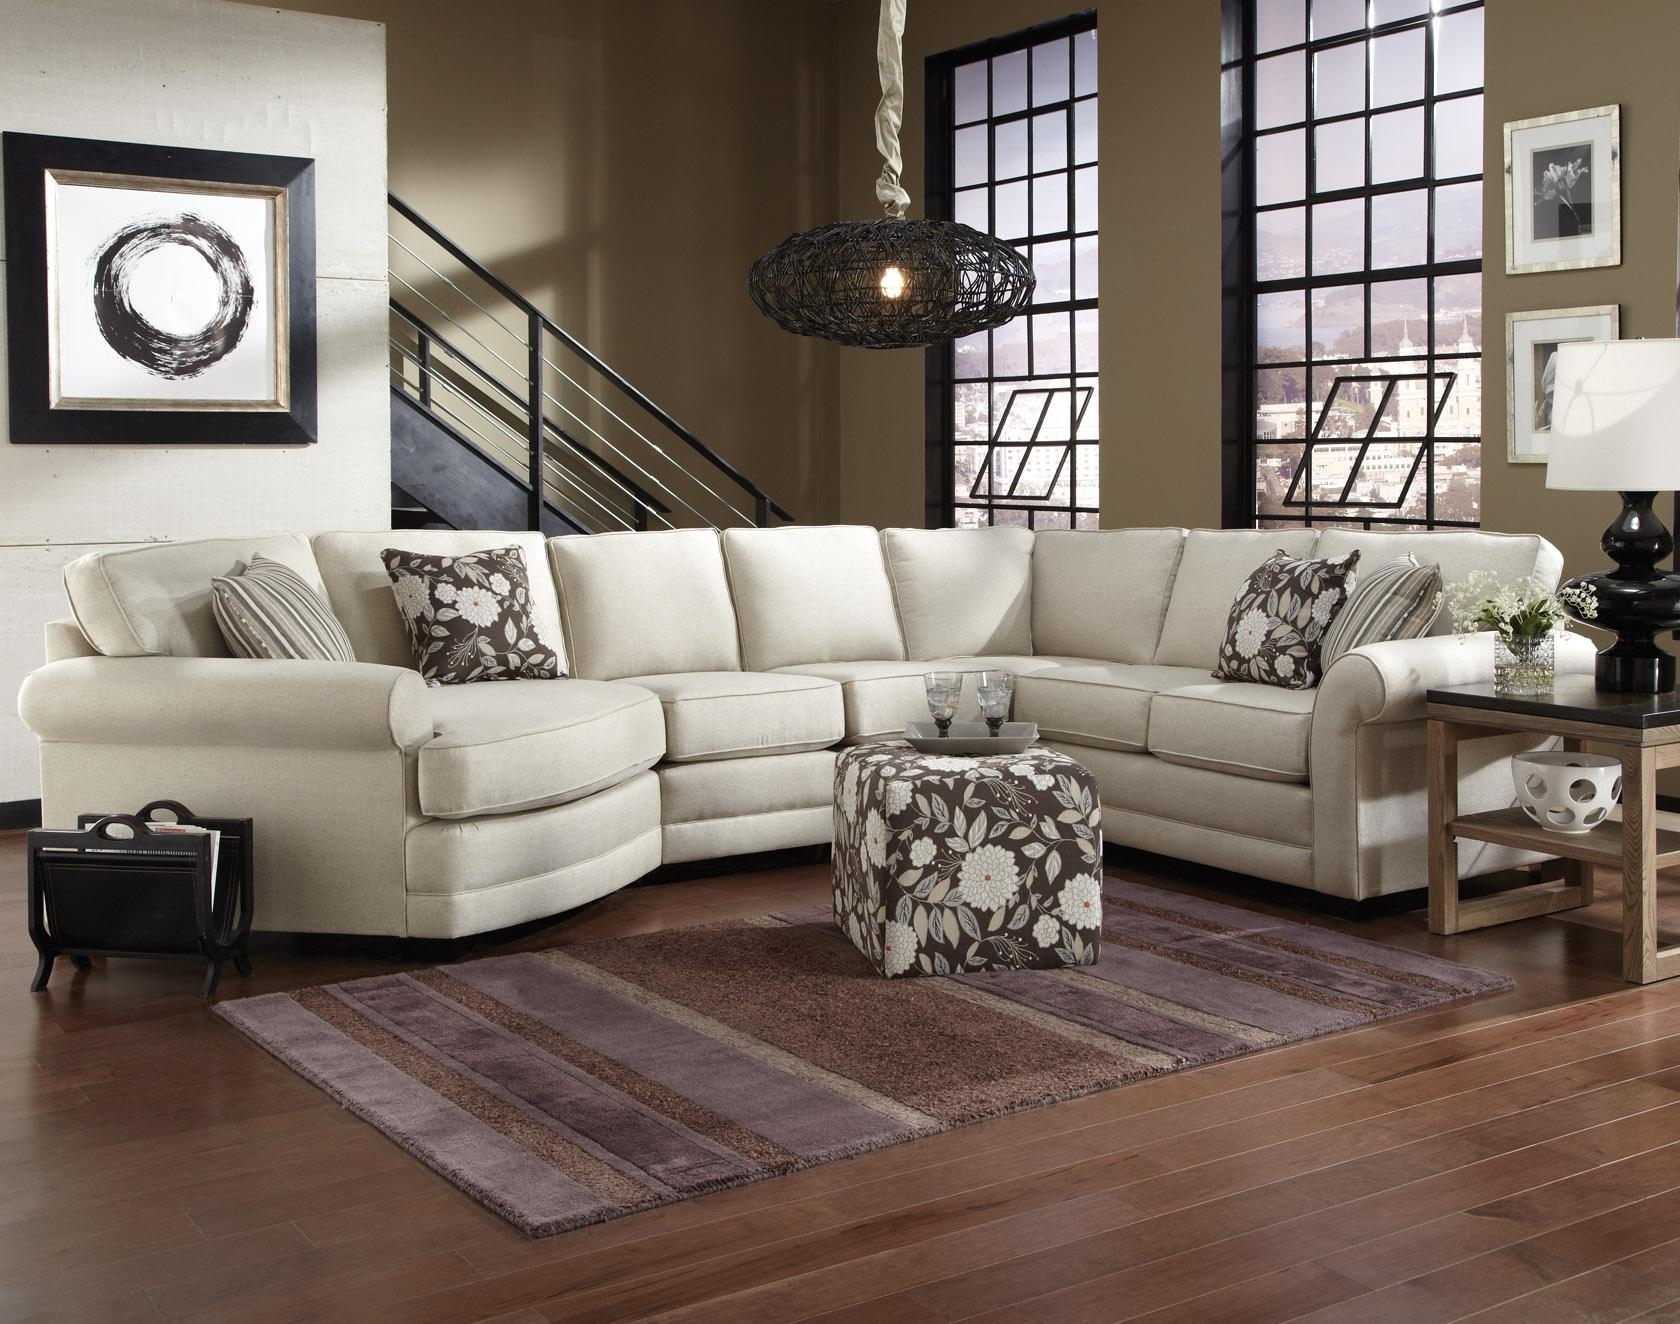 England Brantley 5 Seat Sectional Sofa With Cuddler – Ahfa – Sofa Inside Most Up To Date Kansas City Mo Sectional Sofas (View 2 of 15)